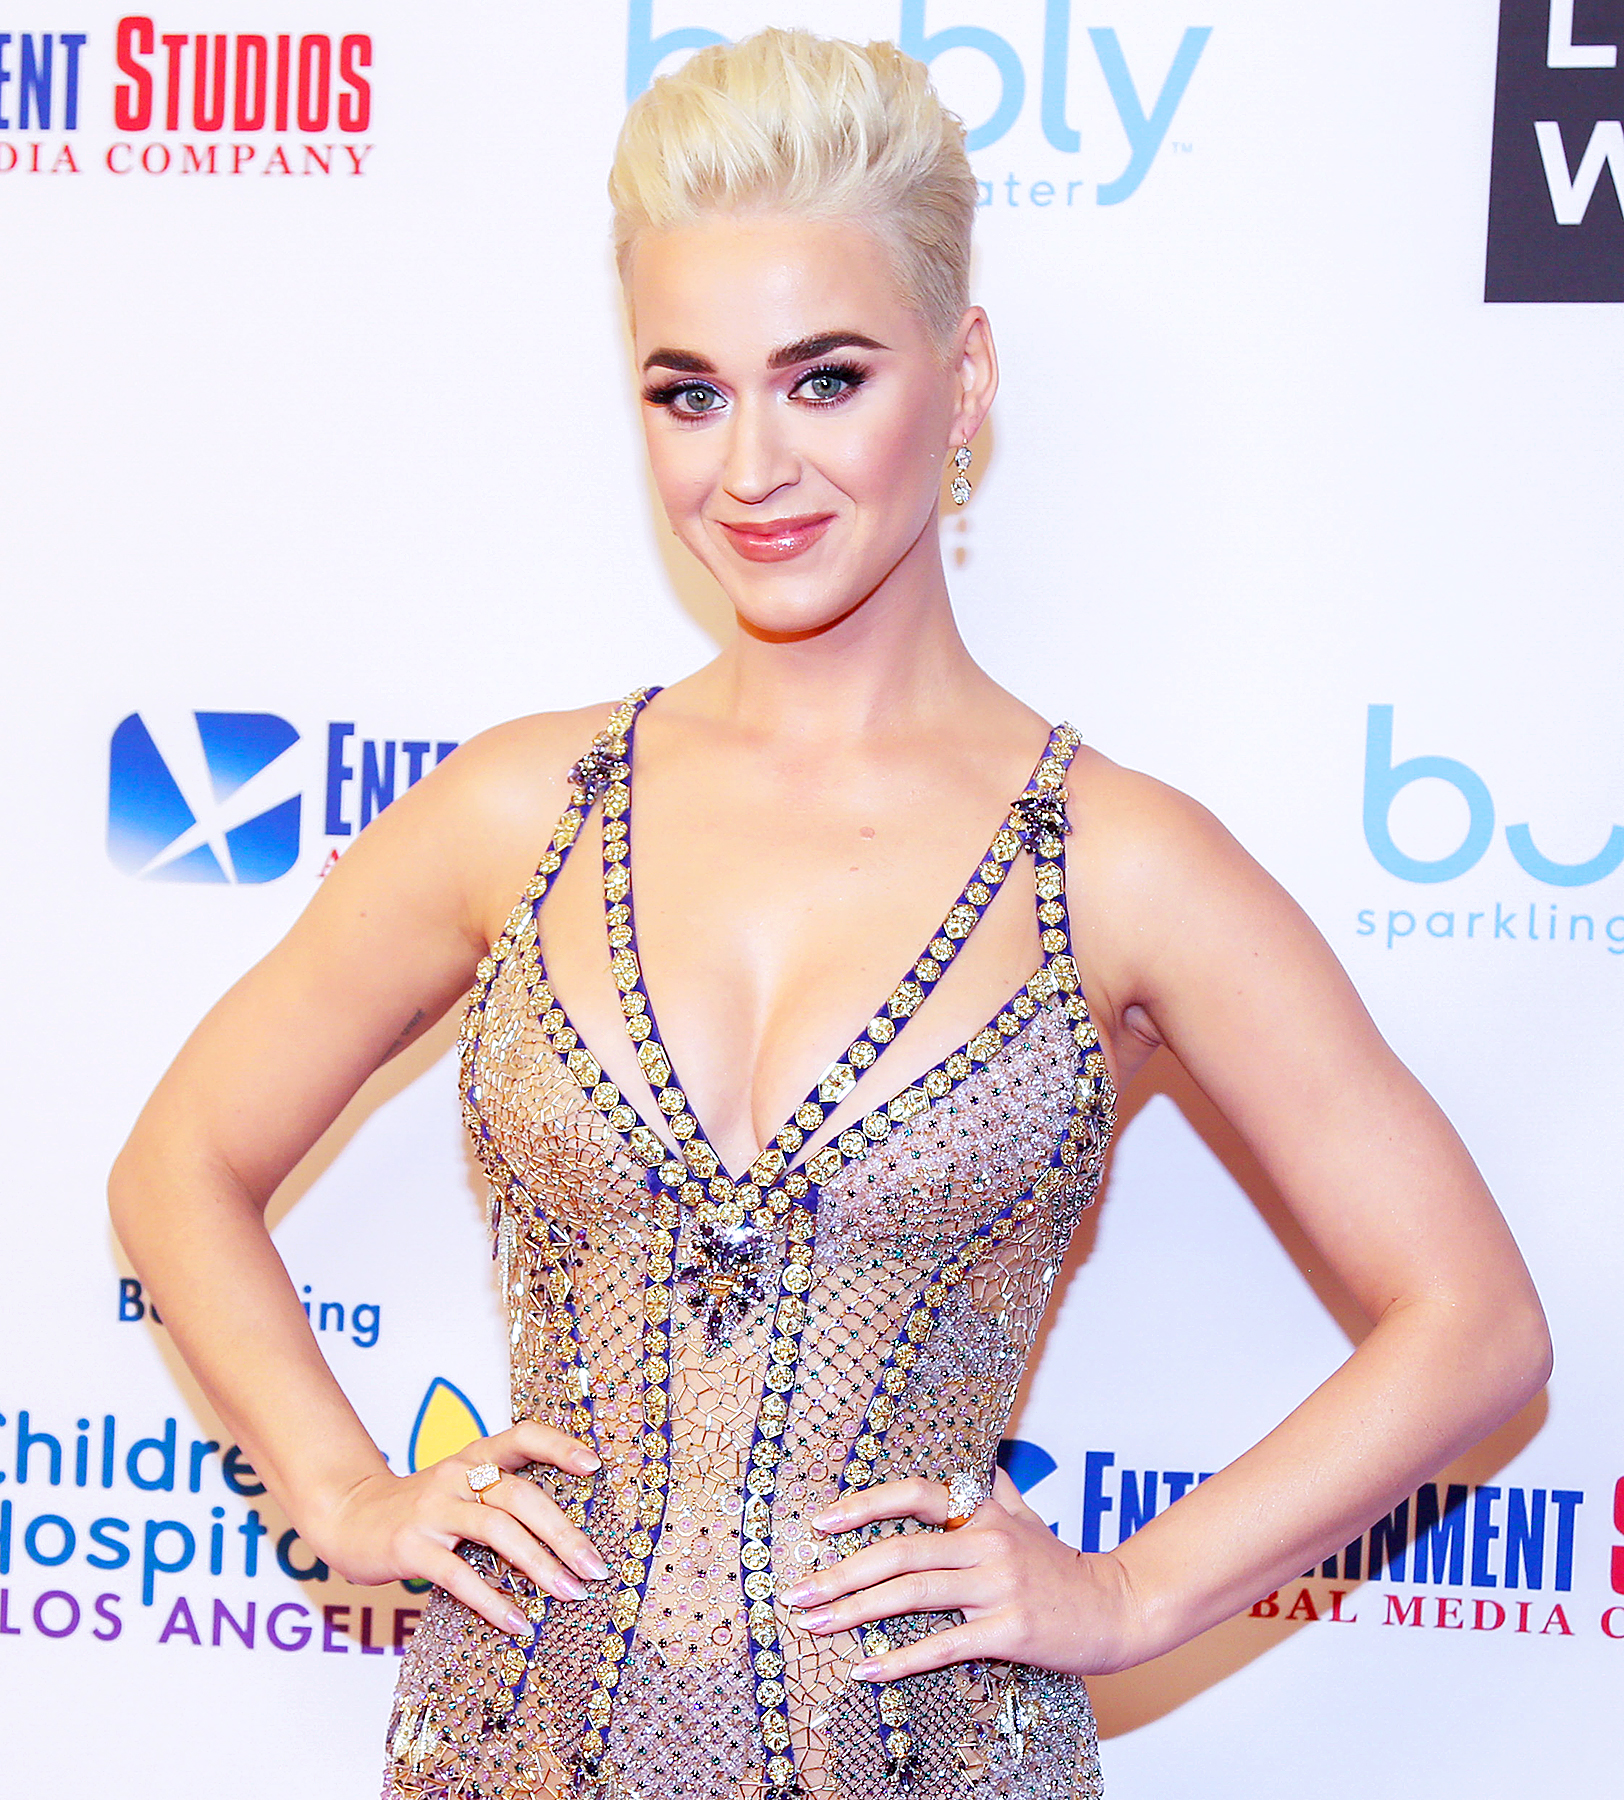 Katy perry cant get a reservation so eats taco bell instead m4hsunfo